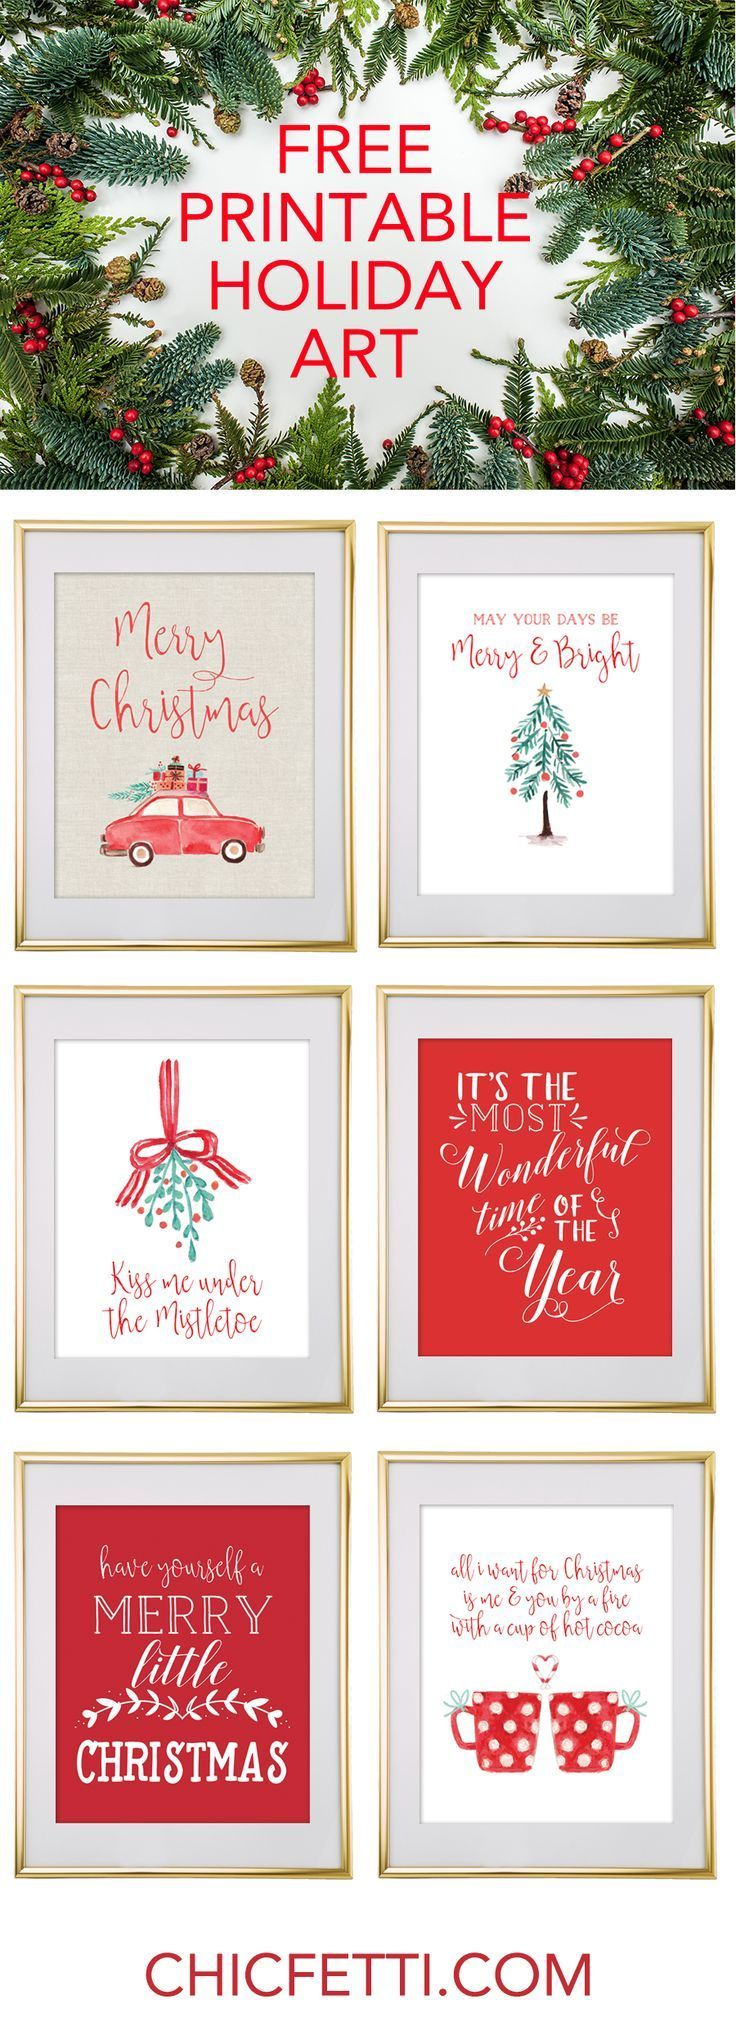 87 best Christmas Printables images on Pinterest | Merry christmas ...